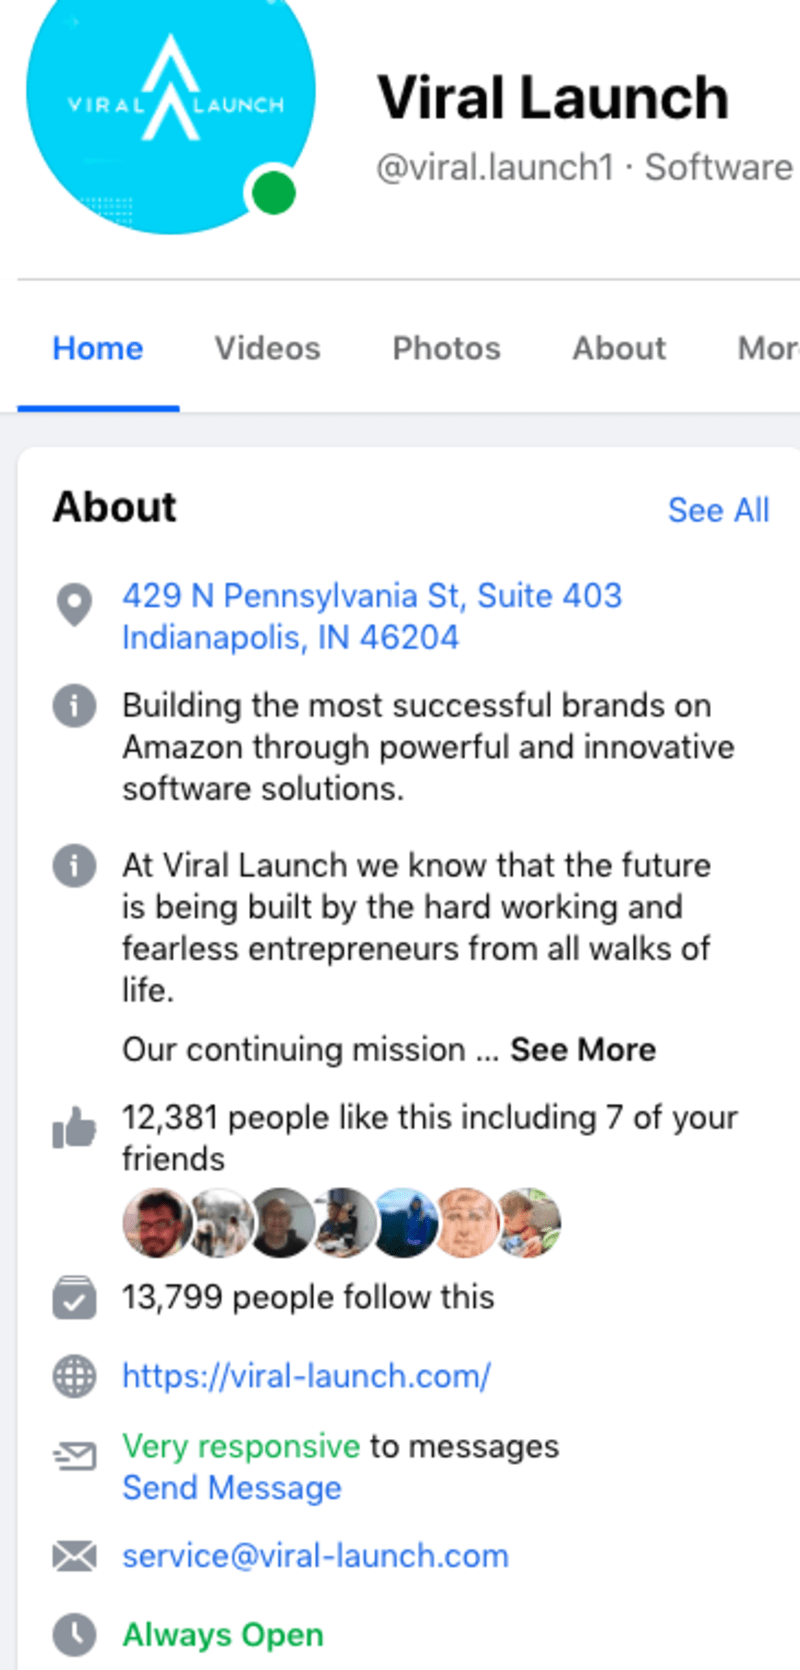 Viral Launch's Facebook Home